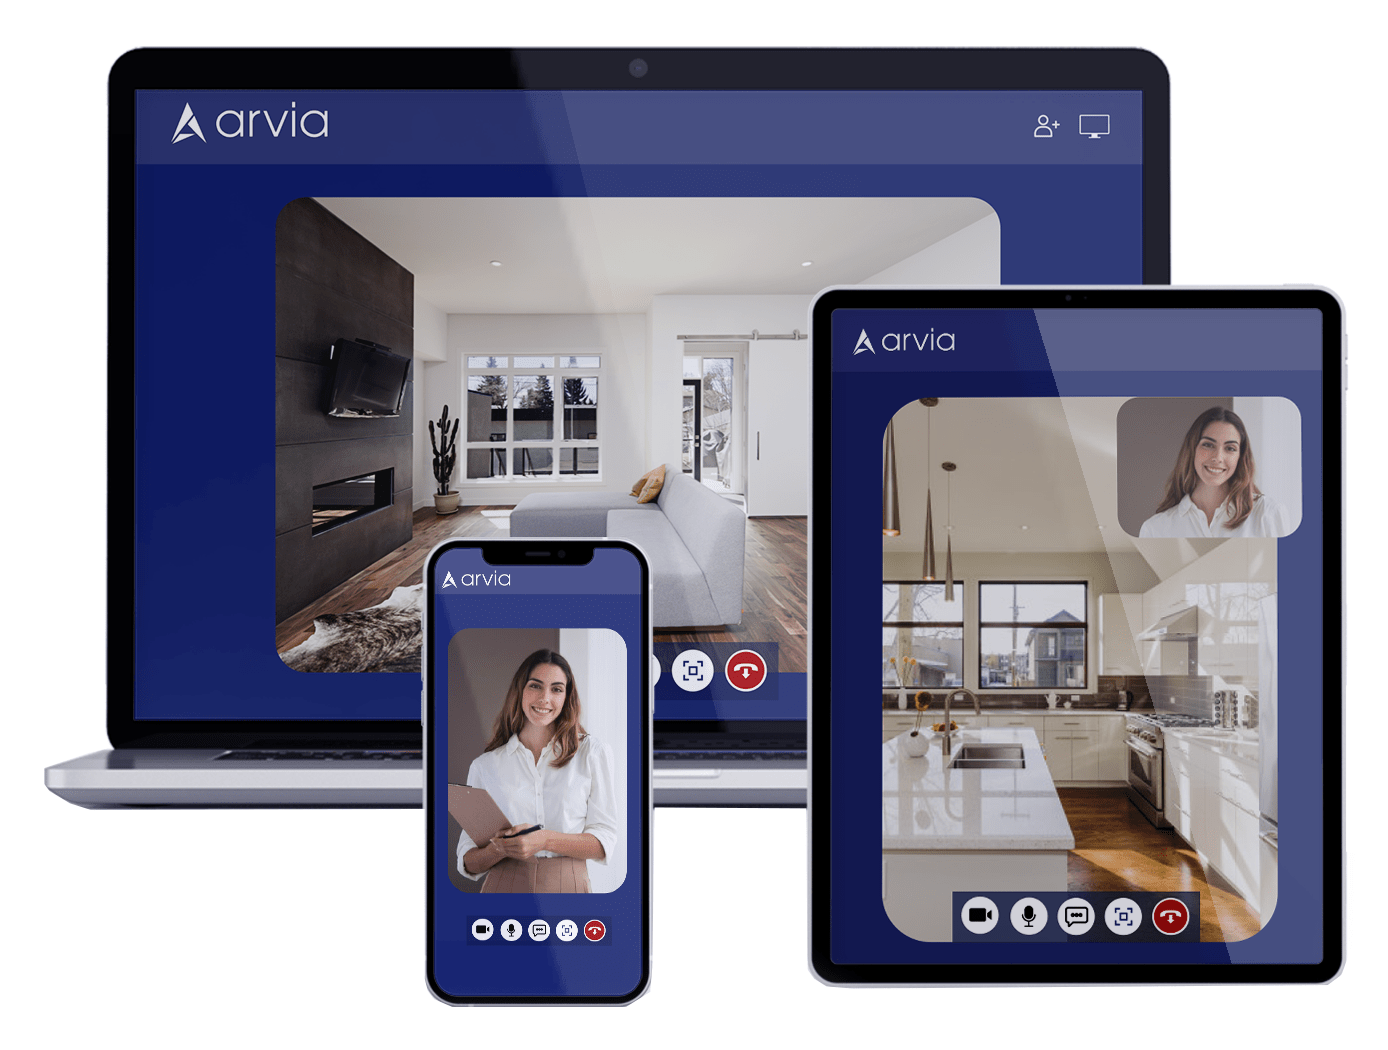 A realtor is showing an apartment by using a phone, a computer, and a tablet via Arvia video chat